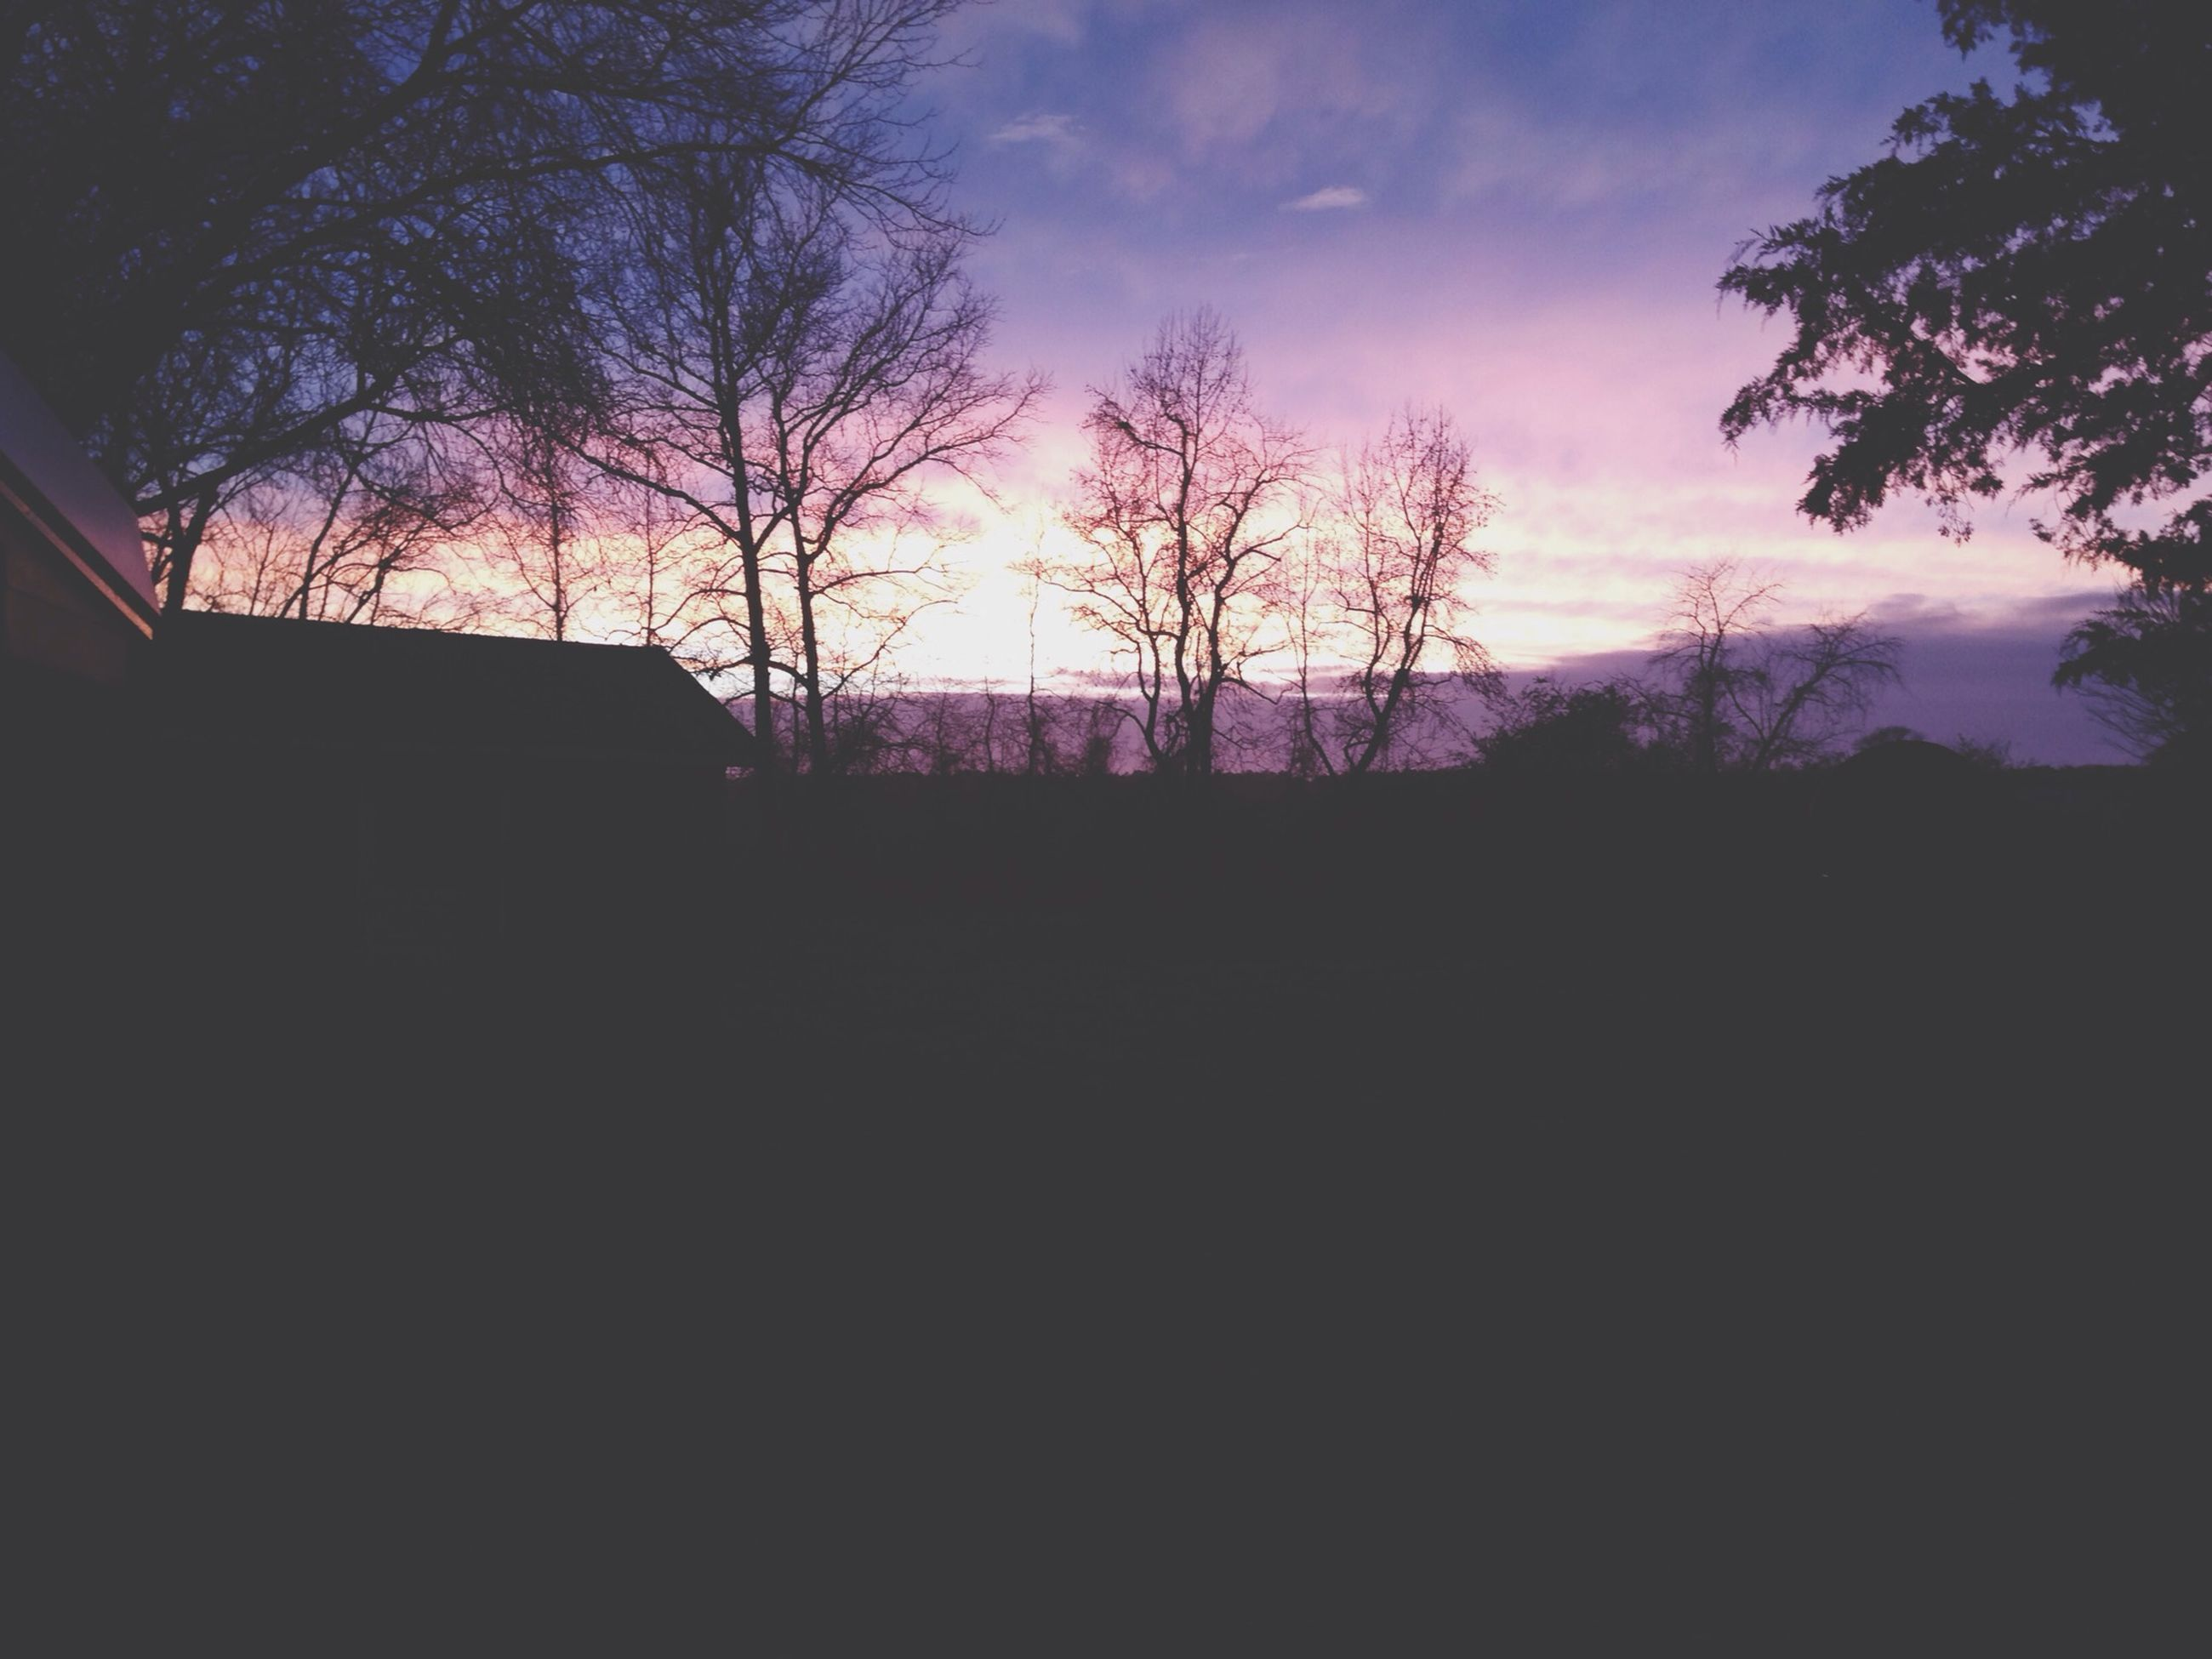 silhouette, sunset, sky, tree, tranquility, tranquil scene, scenics, beauty in nature, dark, landscape, nature, dusk, field, cloud - sky, idyllic, outline, cloud, no people, outdoors, bare tree